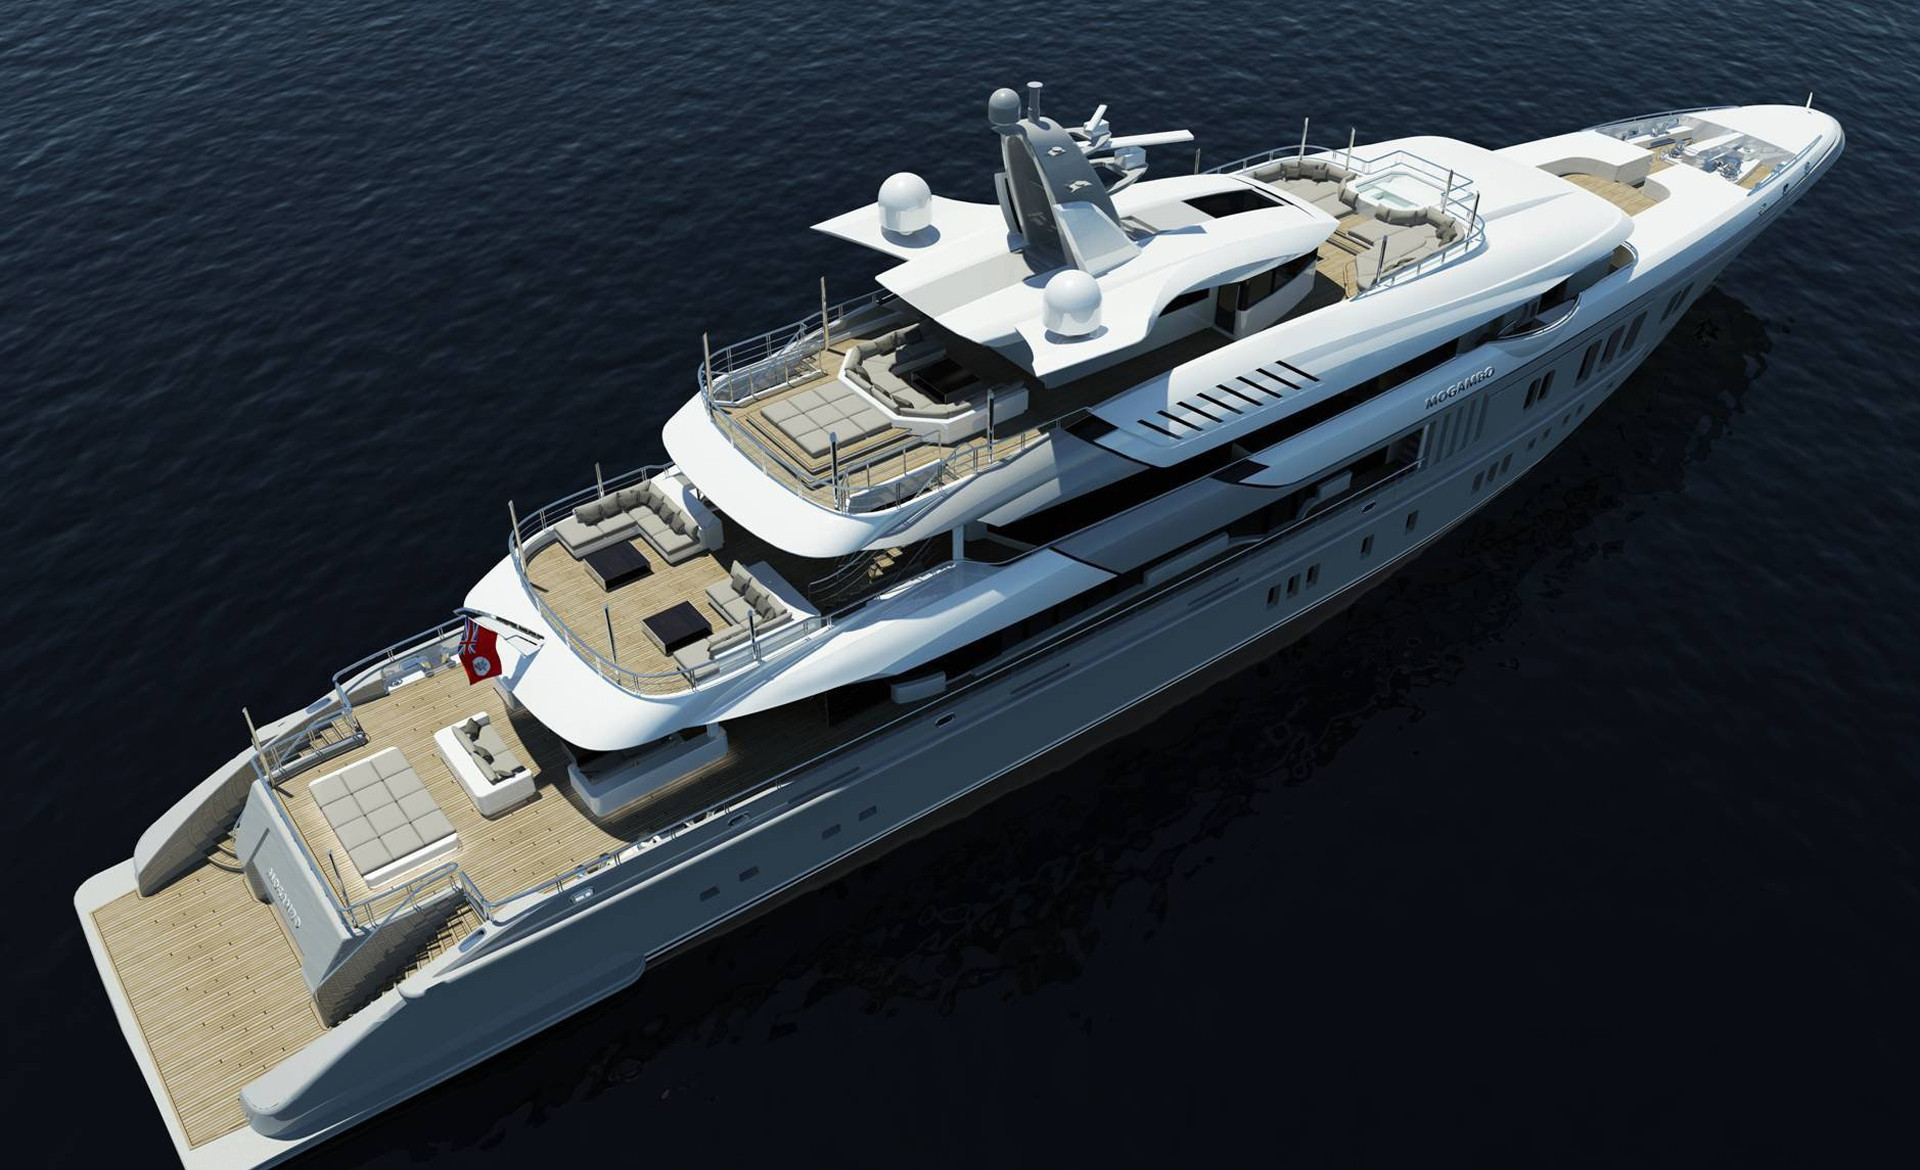 Motor Yachts for Luxury Mega Yacht Charter Vacations